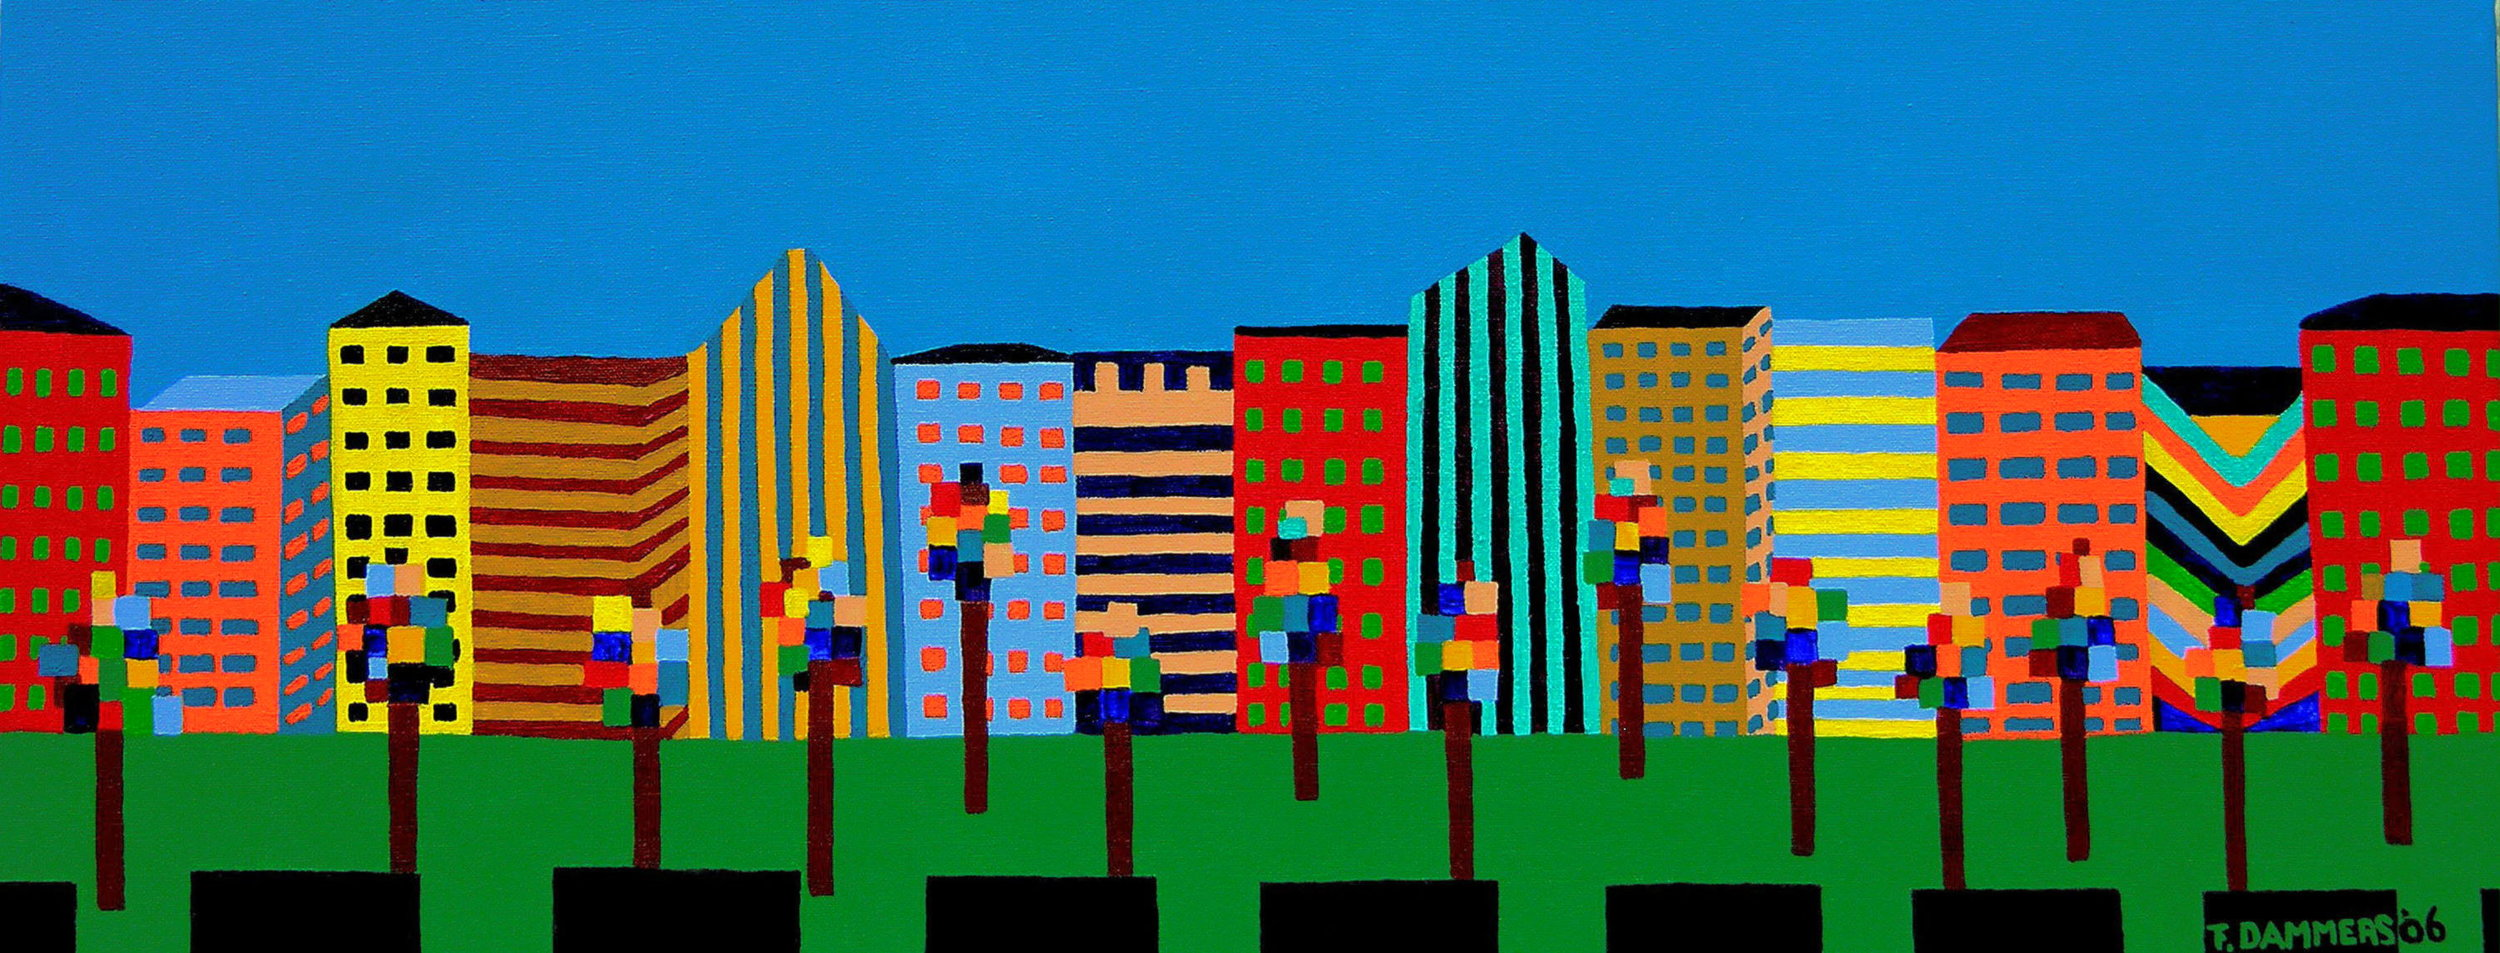 51 Street   51 Street, 2006, acryl/cotton, 7,9 x 19,7 inch  Copyright © F.Dammers Fine Art - All rights reserved.